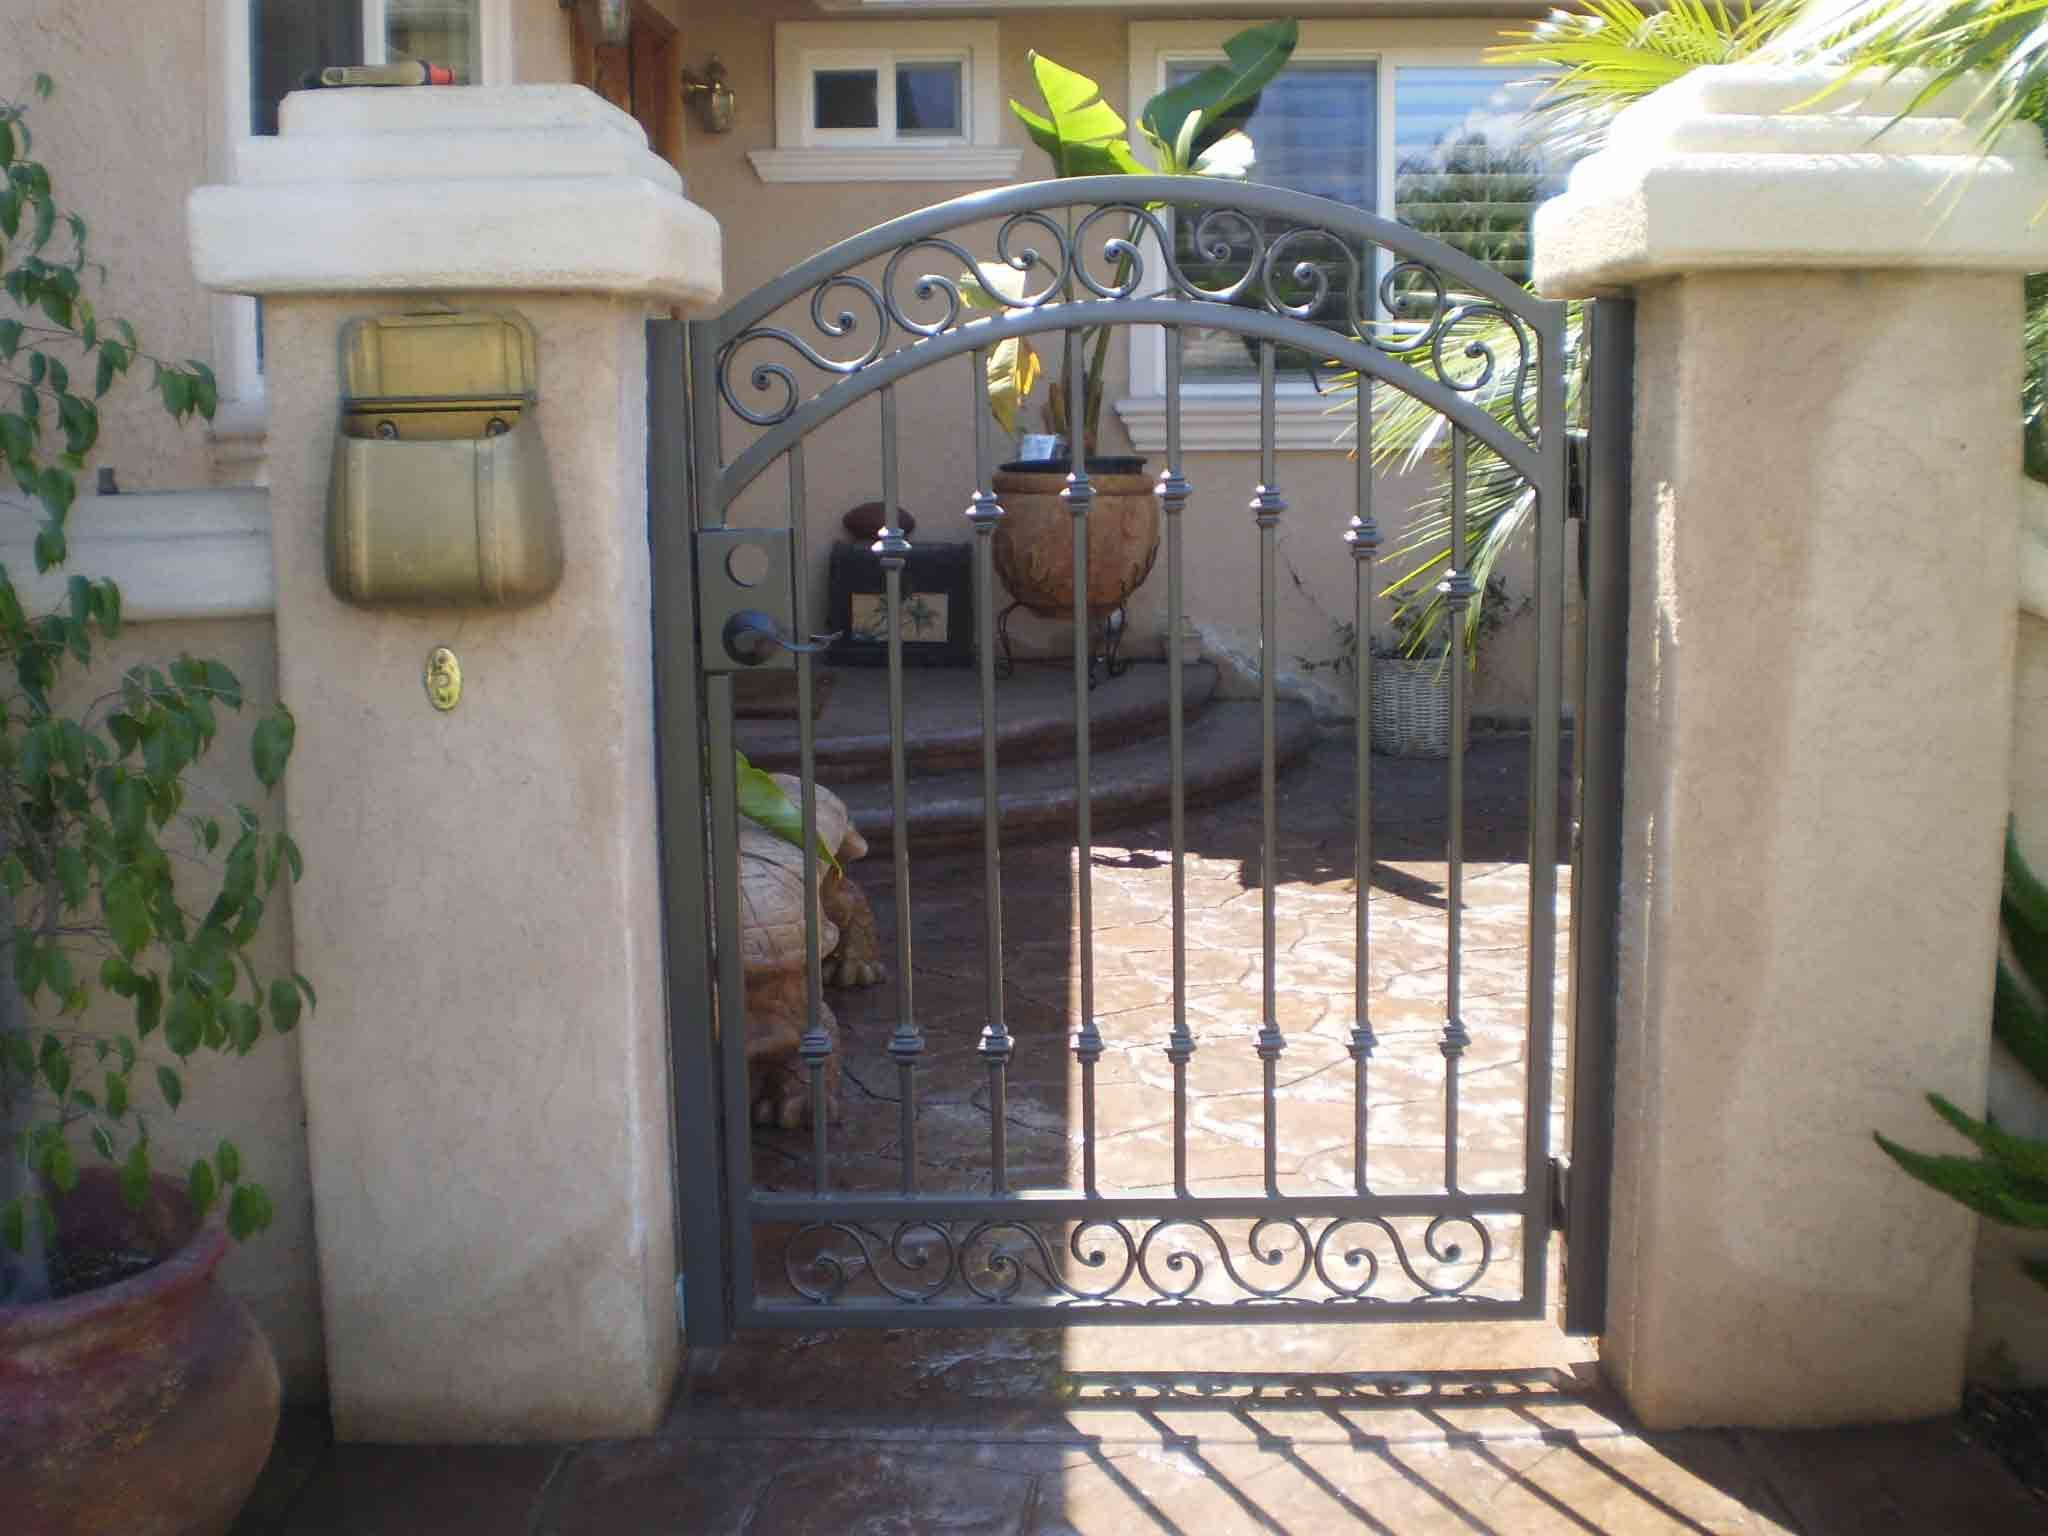 Front yard patio landscaping pictures with wrought iron fencing front yard patio landscaping pictures with wrought iron fencing wrought iron fence gates eventelaan Image collections